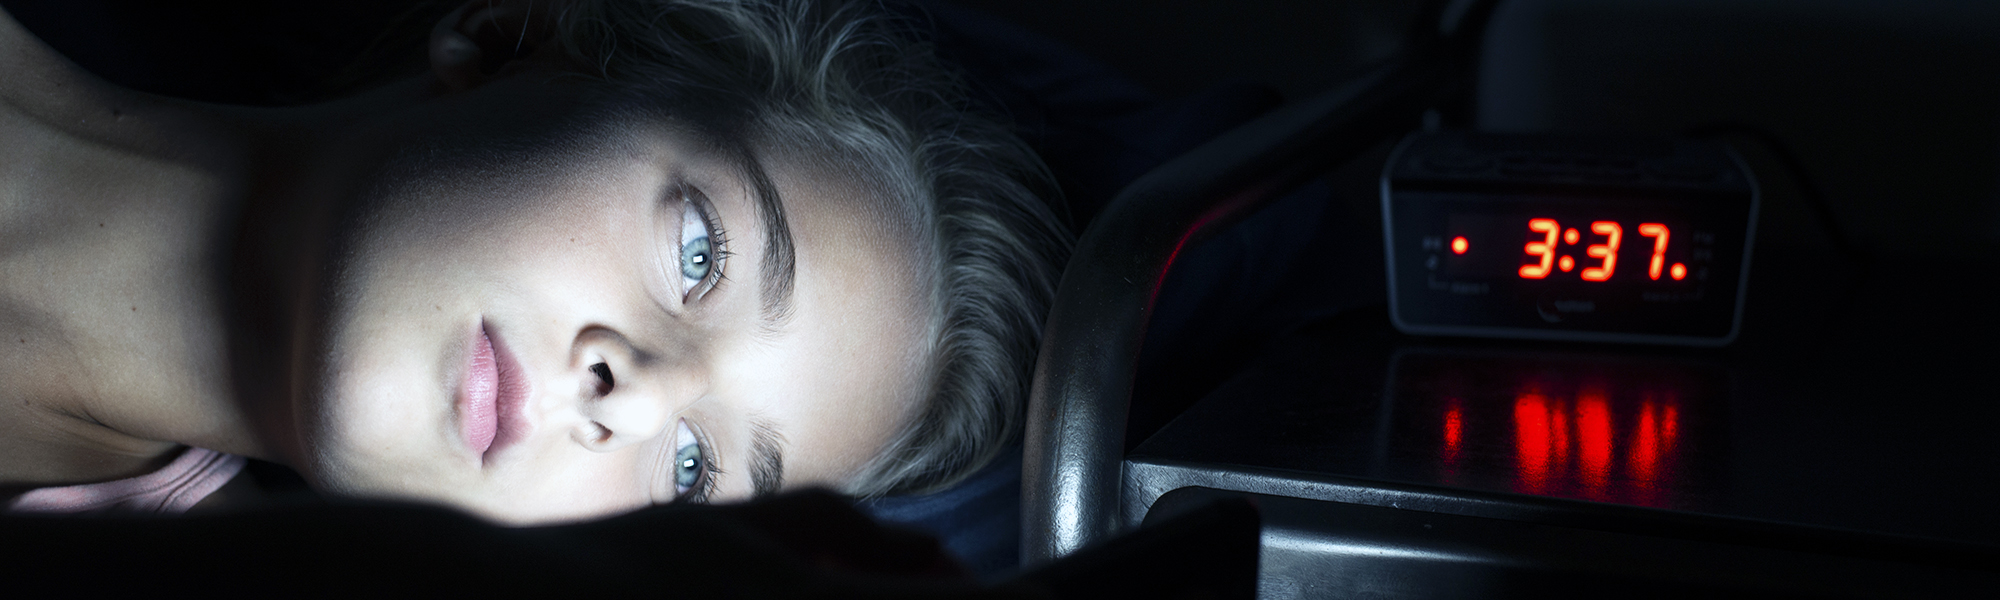 Young girl using mobile phone in bed at midnight, can't sleep